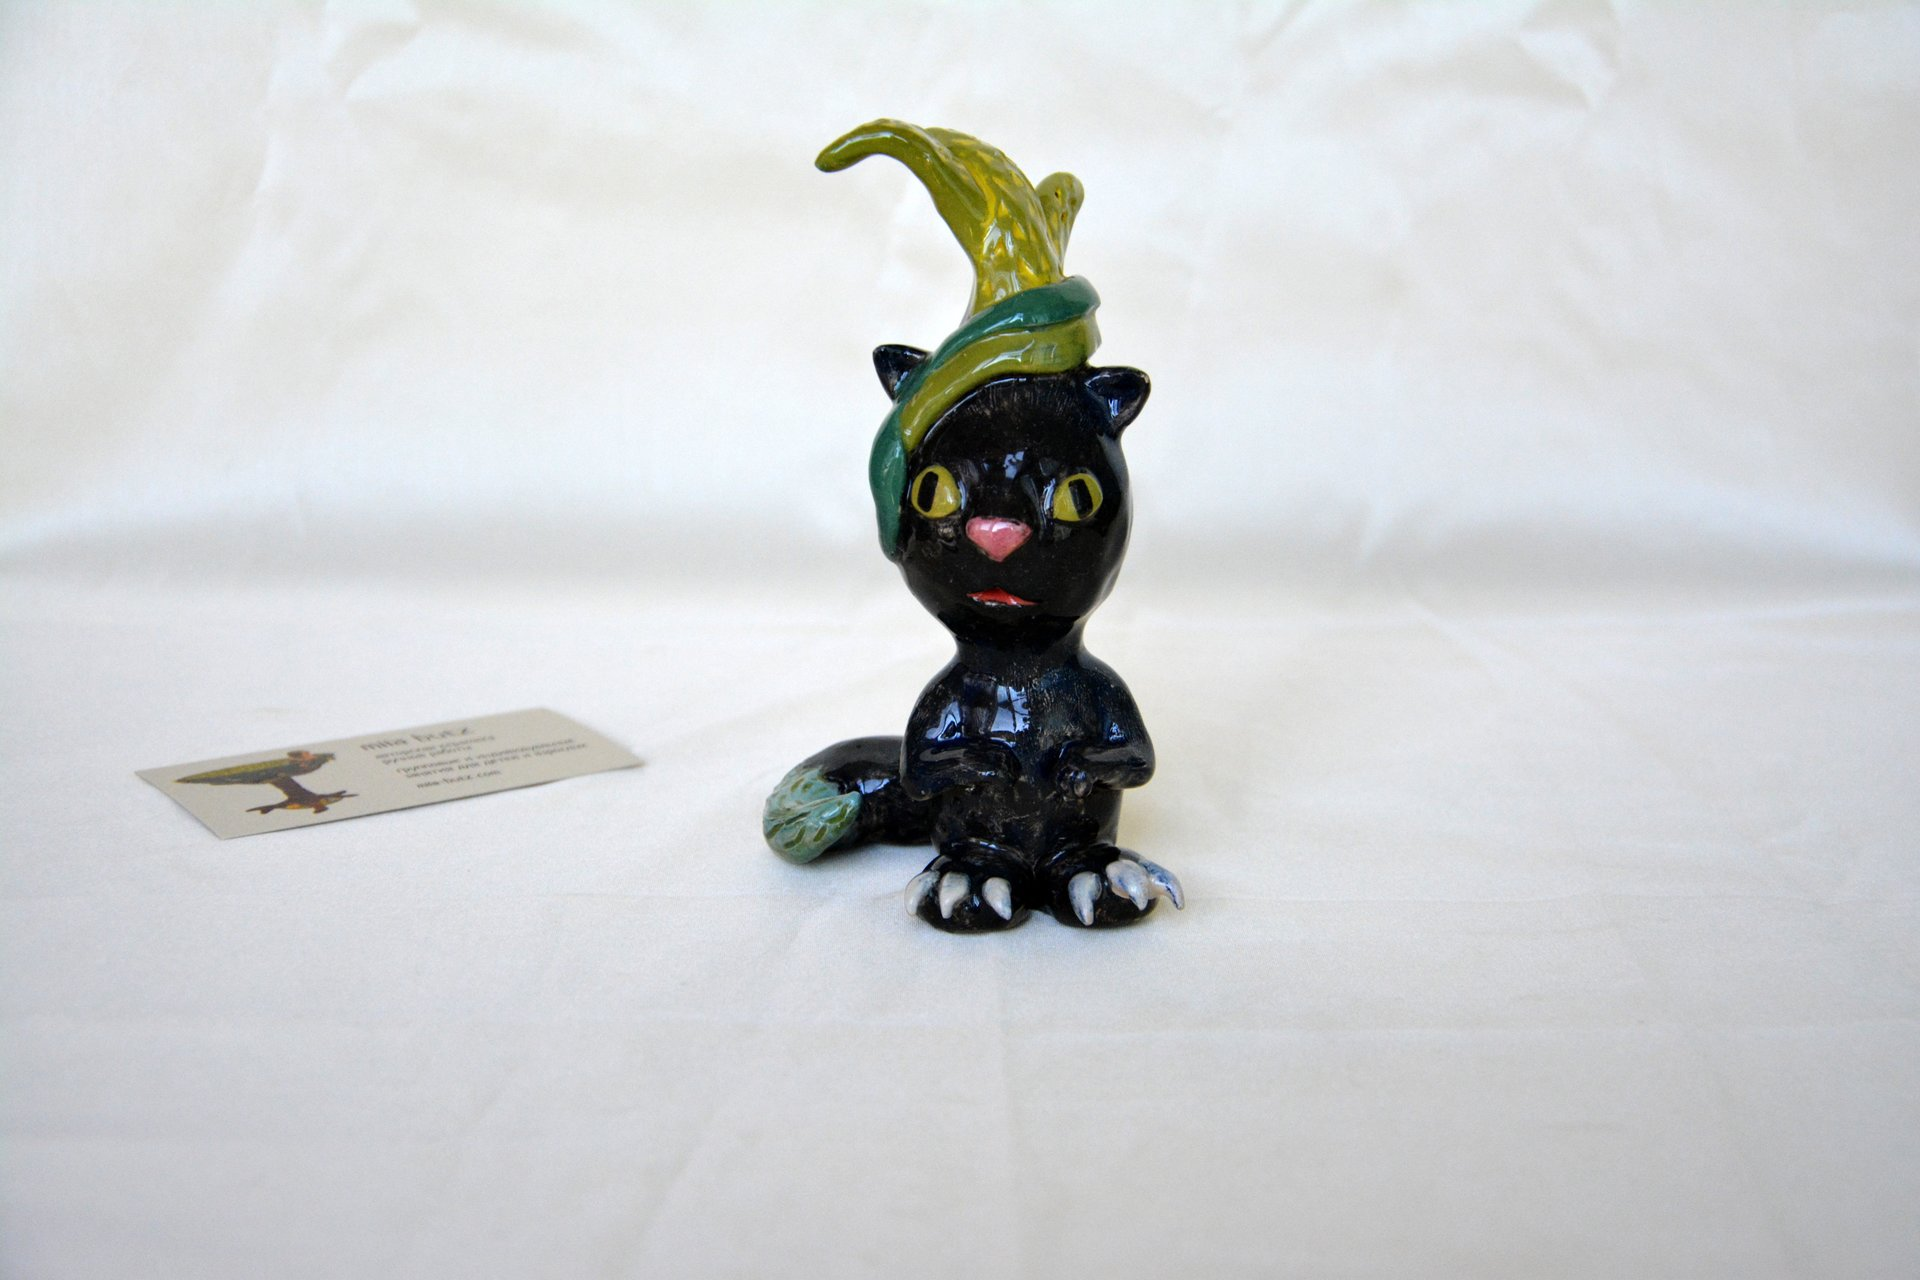 FreakCat - Ceramic other figures, height - 13 cm, photo 1 of 4.